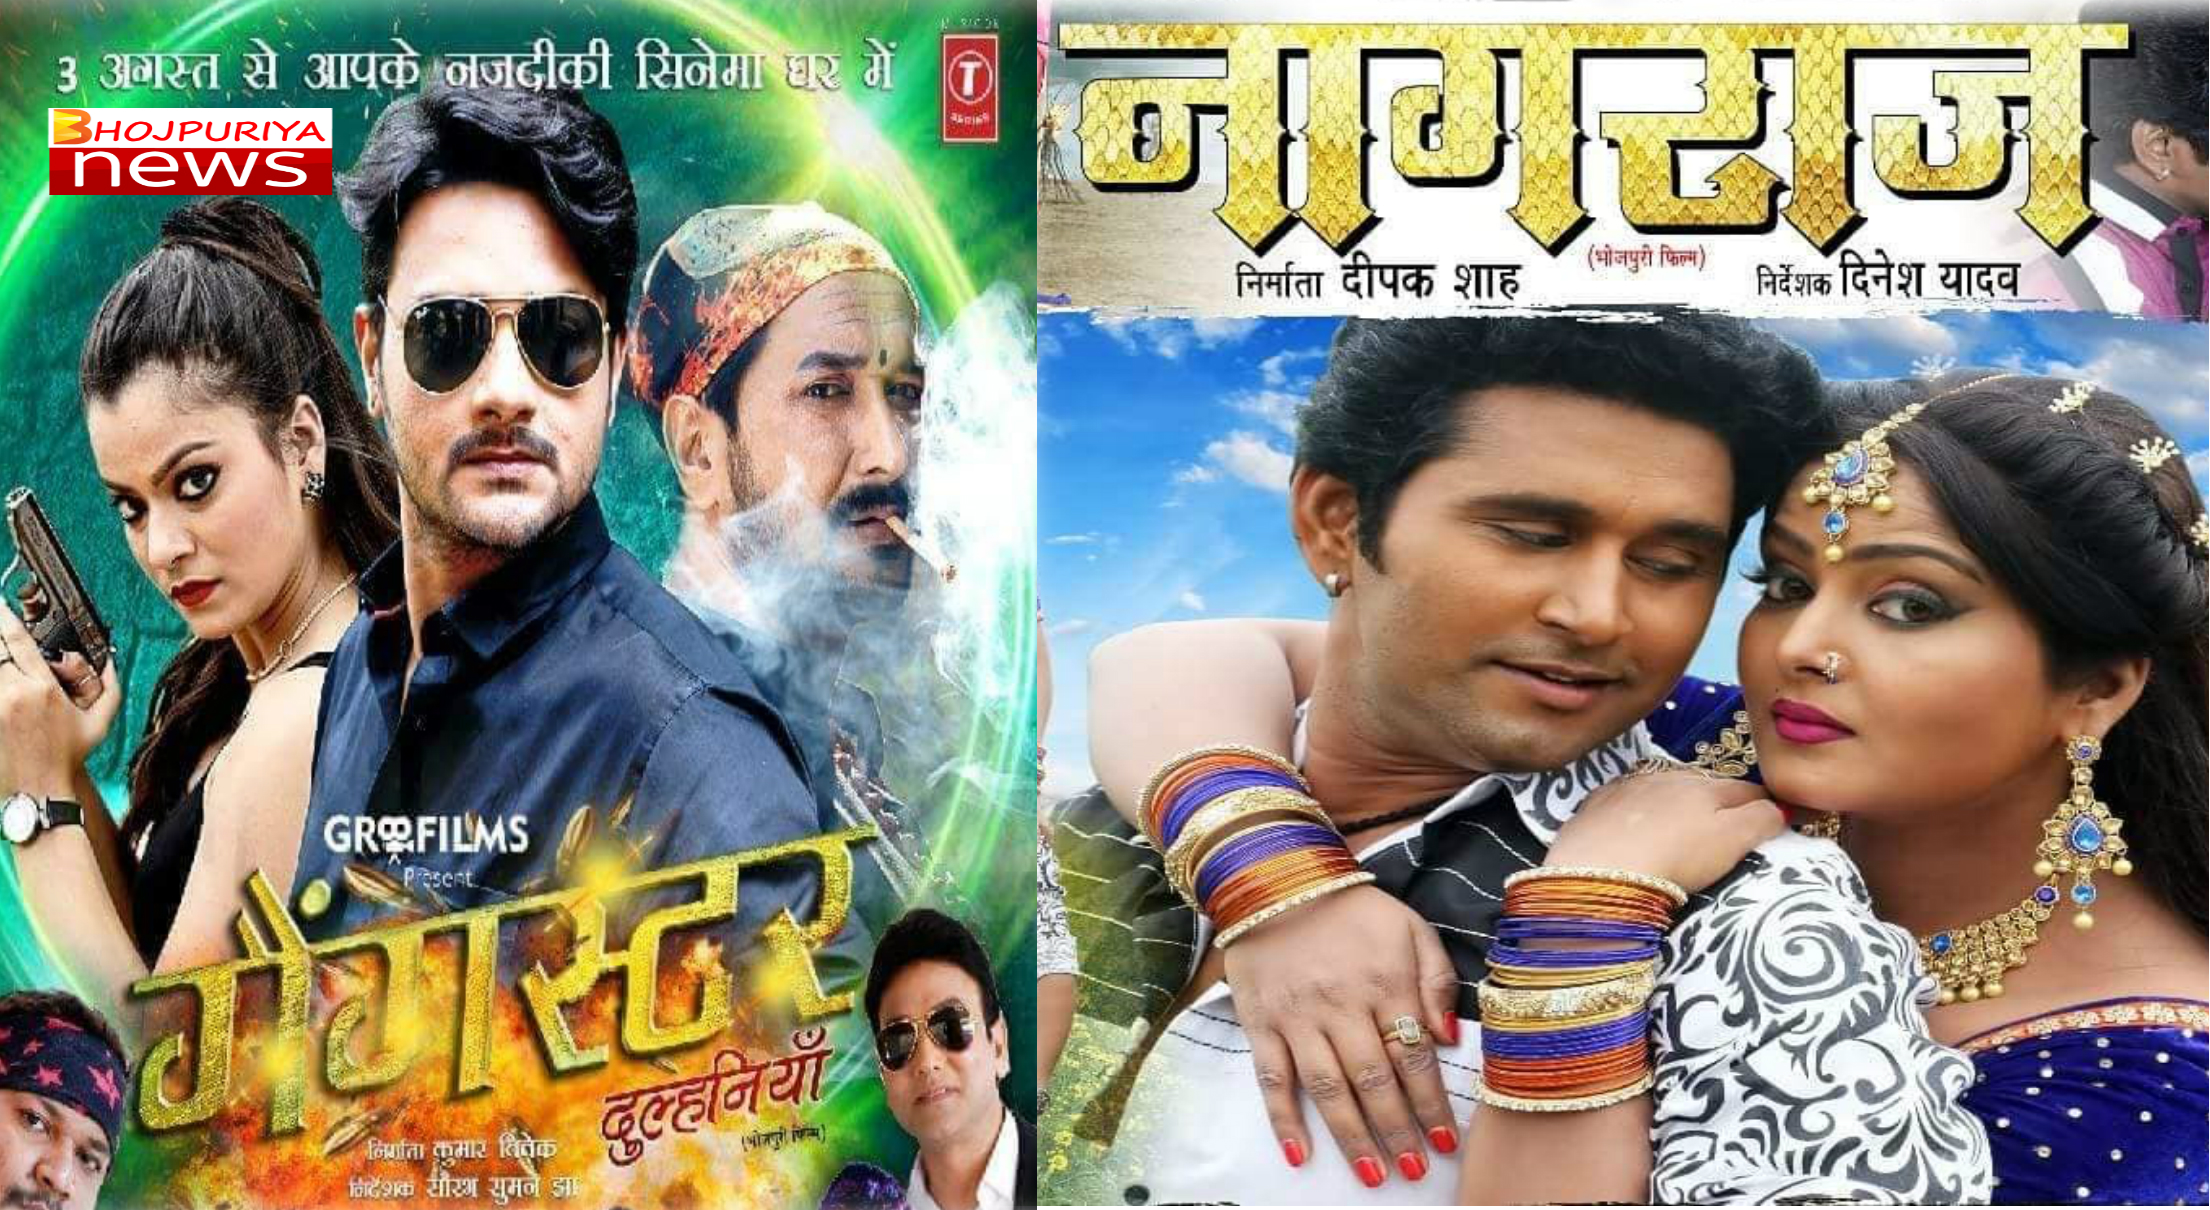 Bhojpuri's two new flavored films Nagraj and Gangster Dulhania